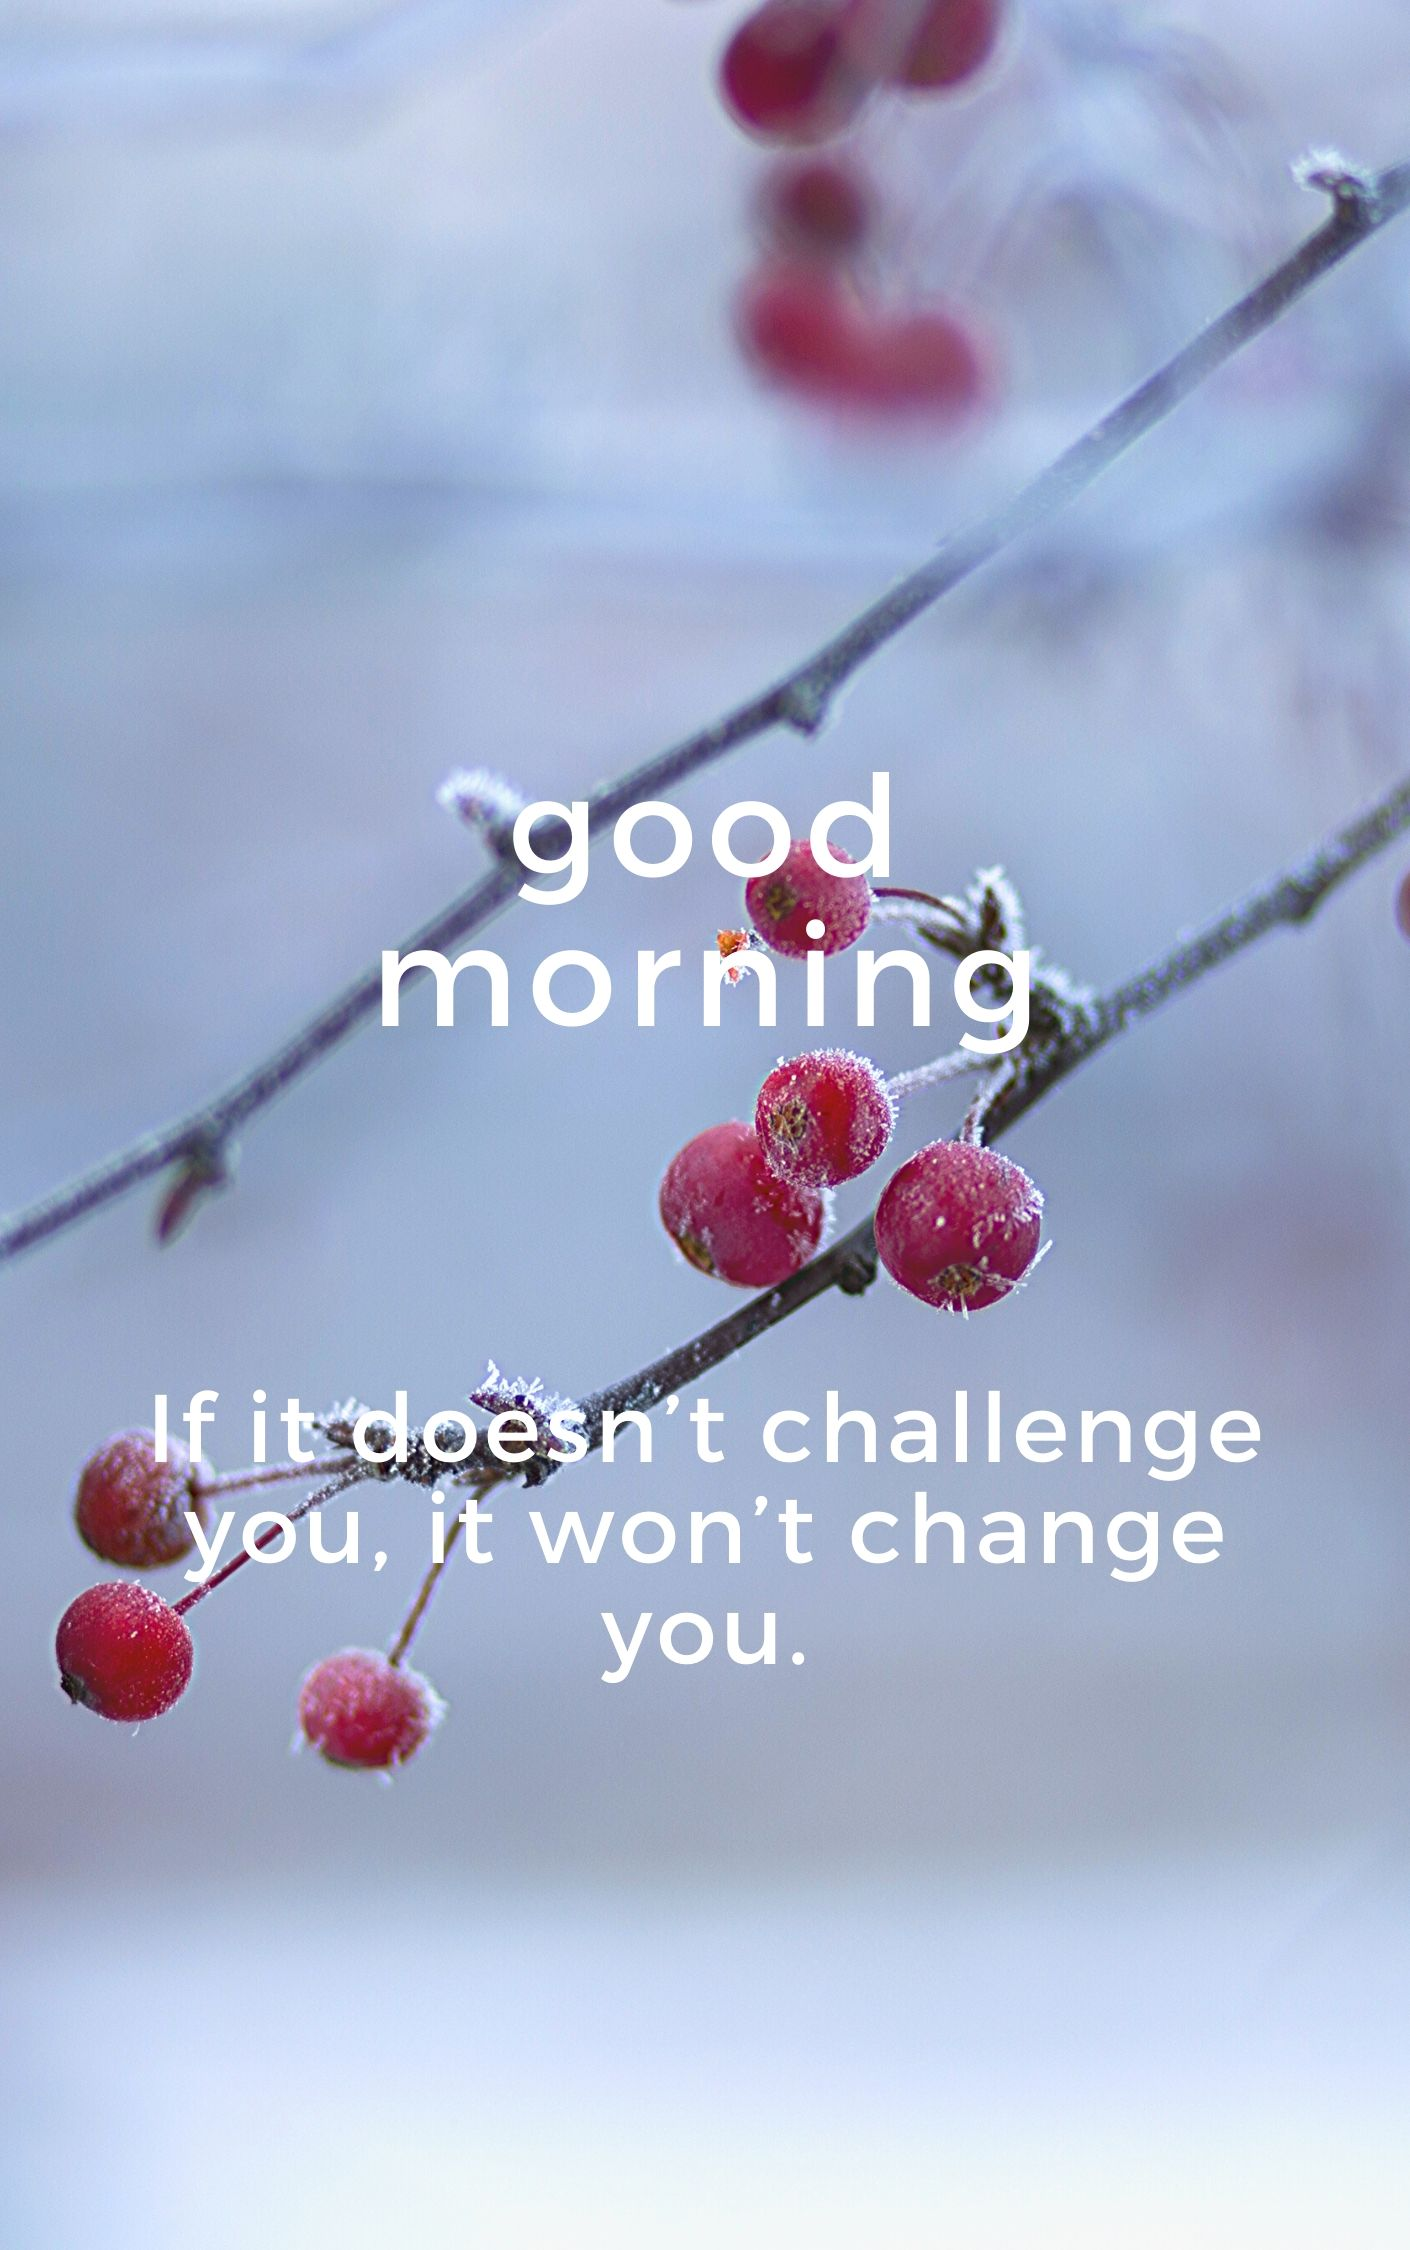 If it doesnt challenge you it wont change you. Good Morning Wishes full HD free download.